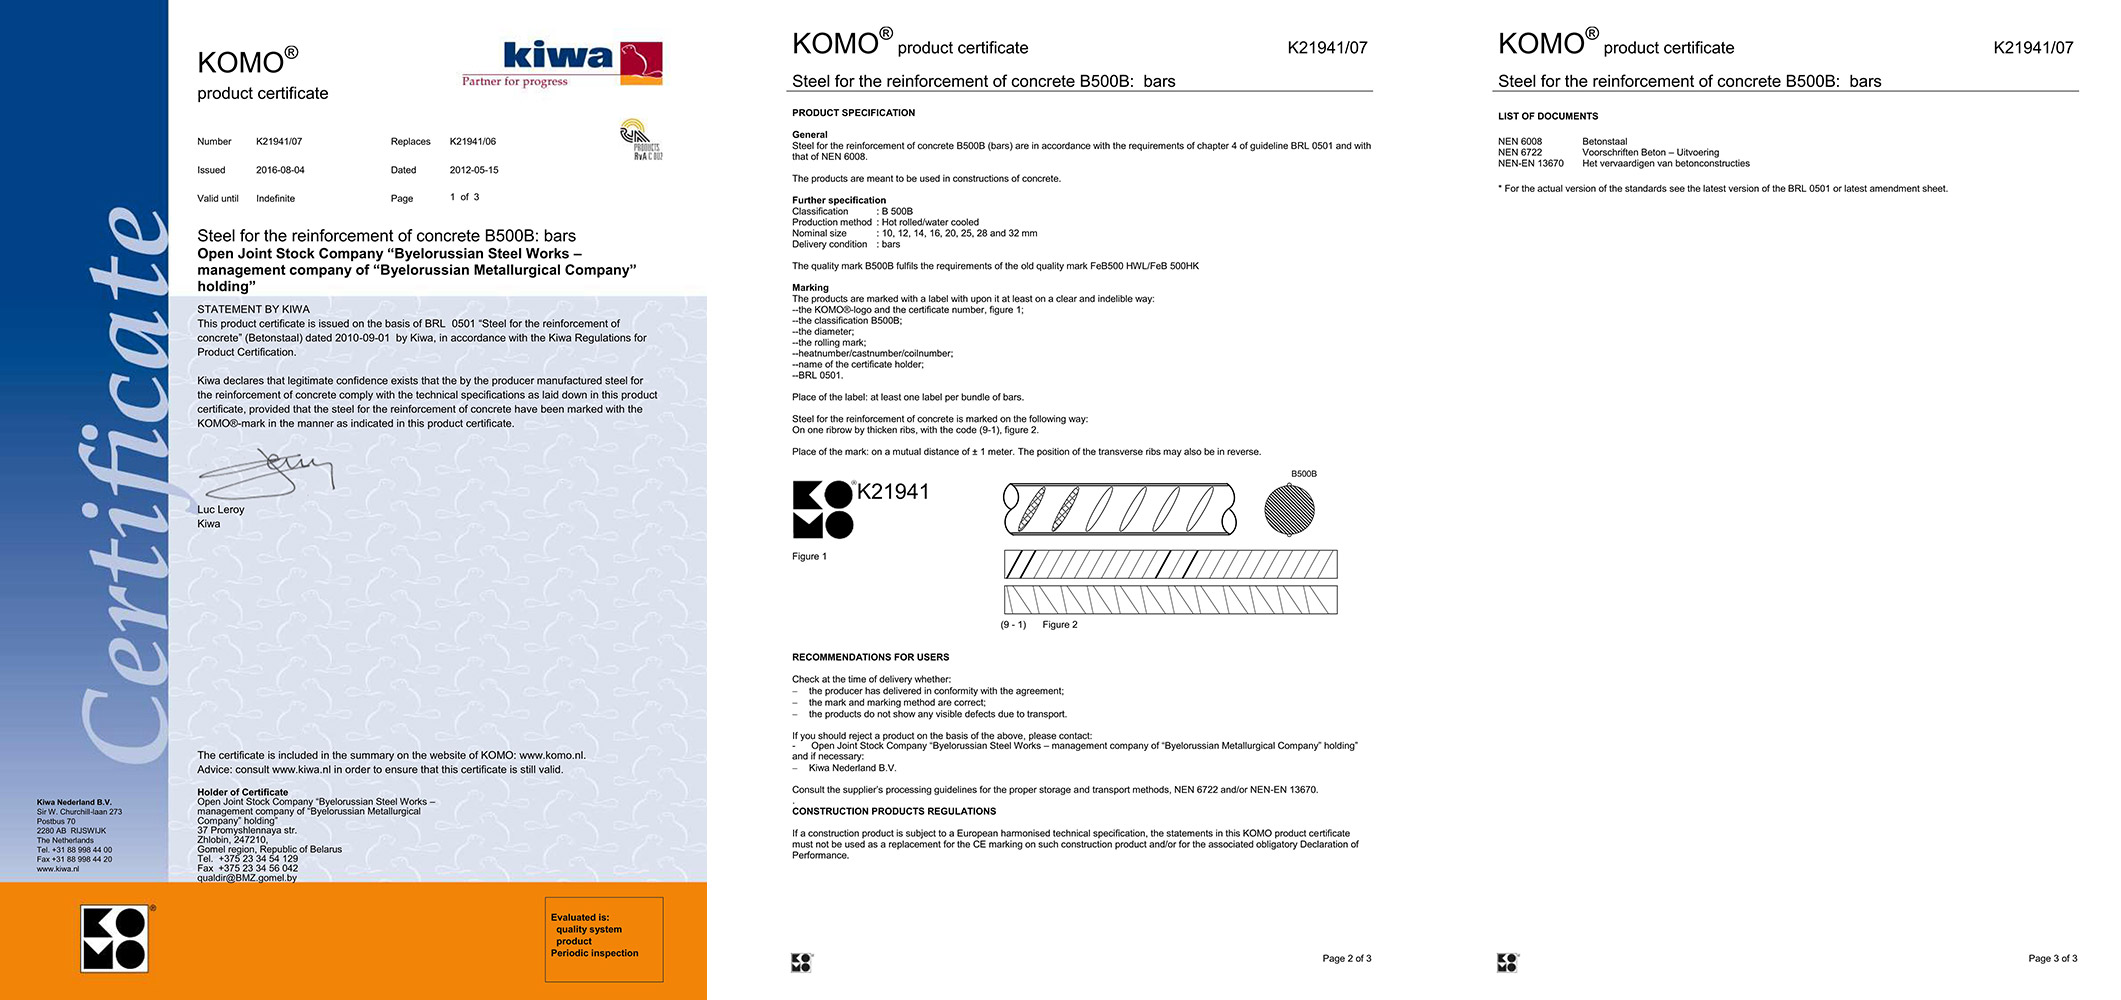 Certificate KIWA, Holland, No. K21941/07 for production of reinforcement steel B500B ø 10-32 mm in conformity with BRL 0501 and standard NEN 6008